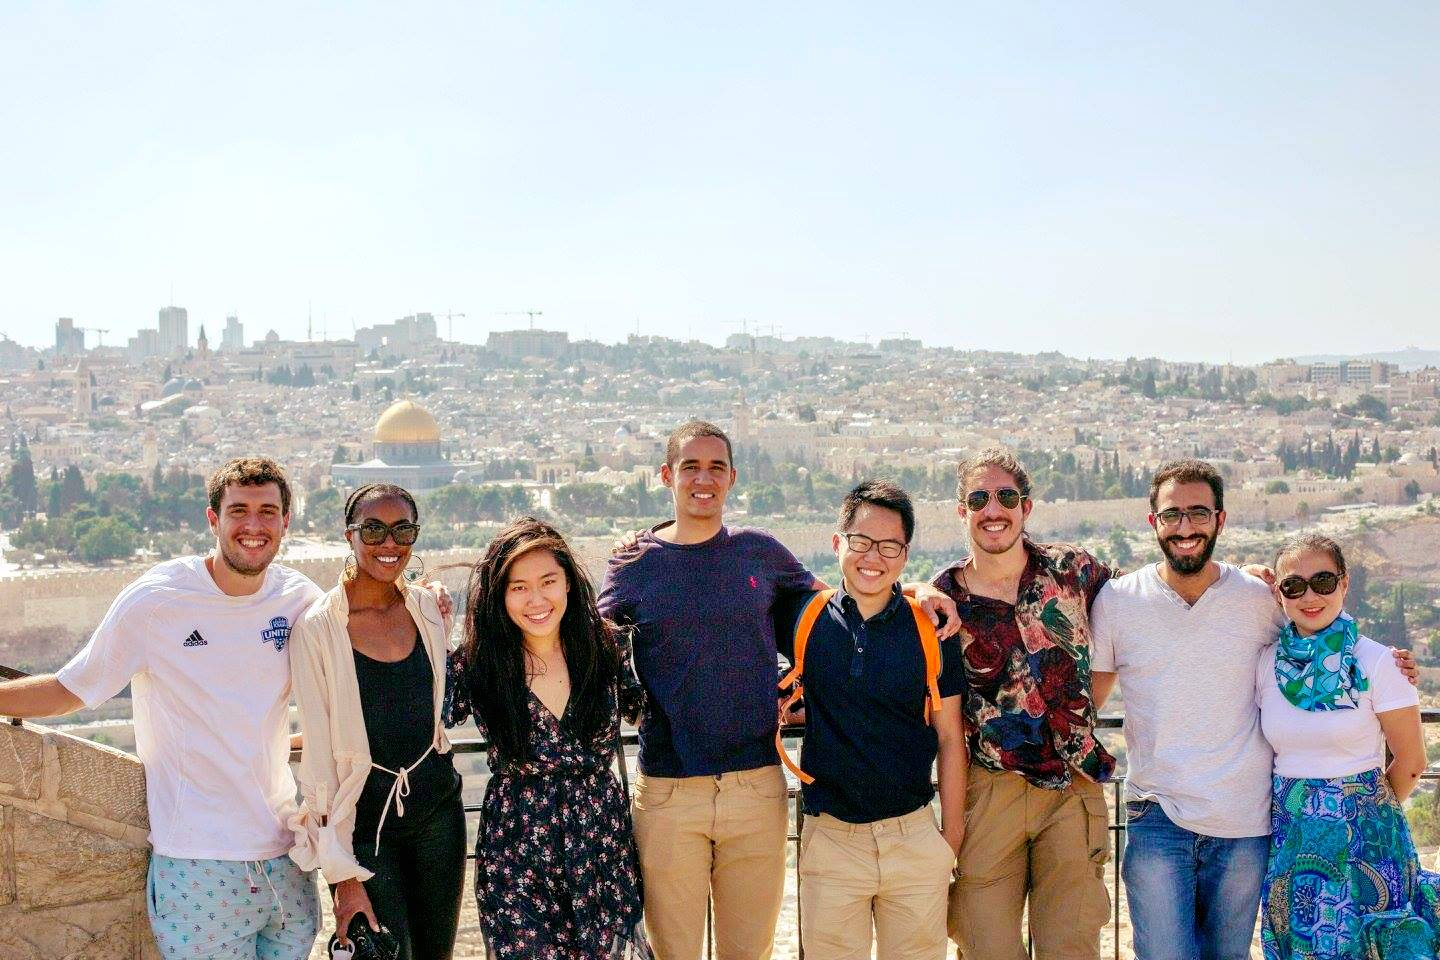 Volunteer Instructors:  Current students and recent alumni from Stanford University, selected by Code.X are responsible for holistic student education in 2-3 week summer camps, alongside local co-instructors